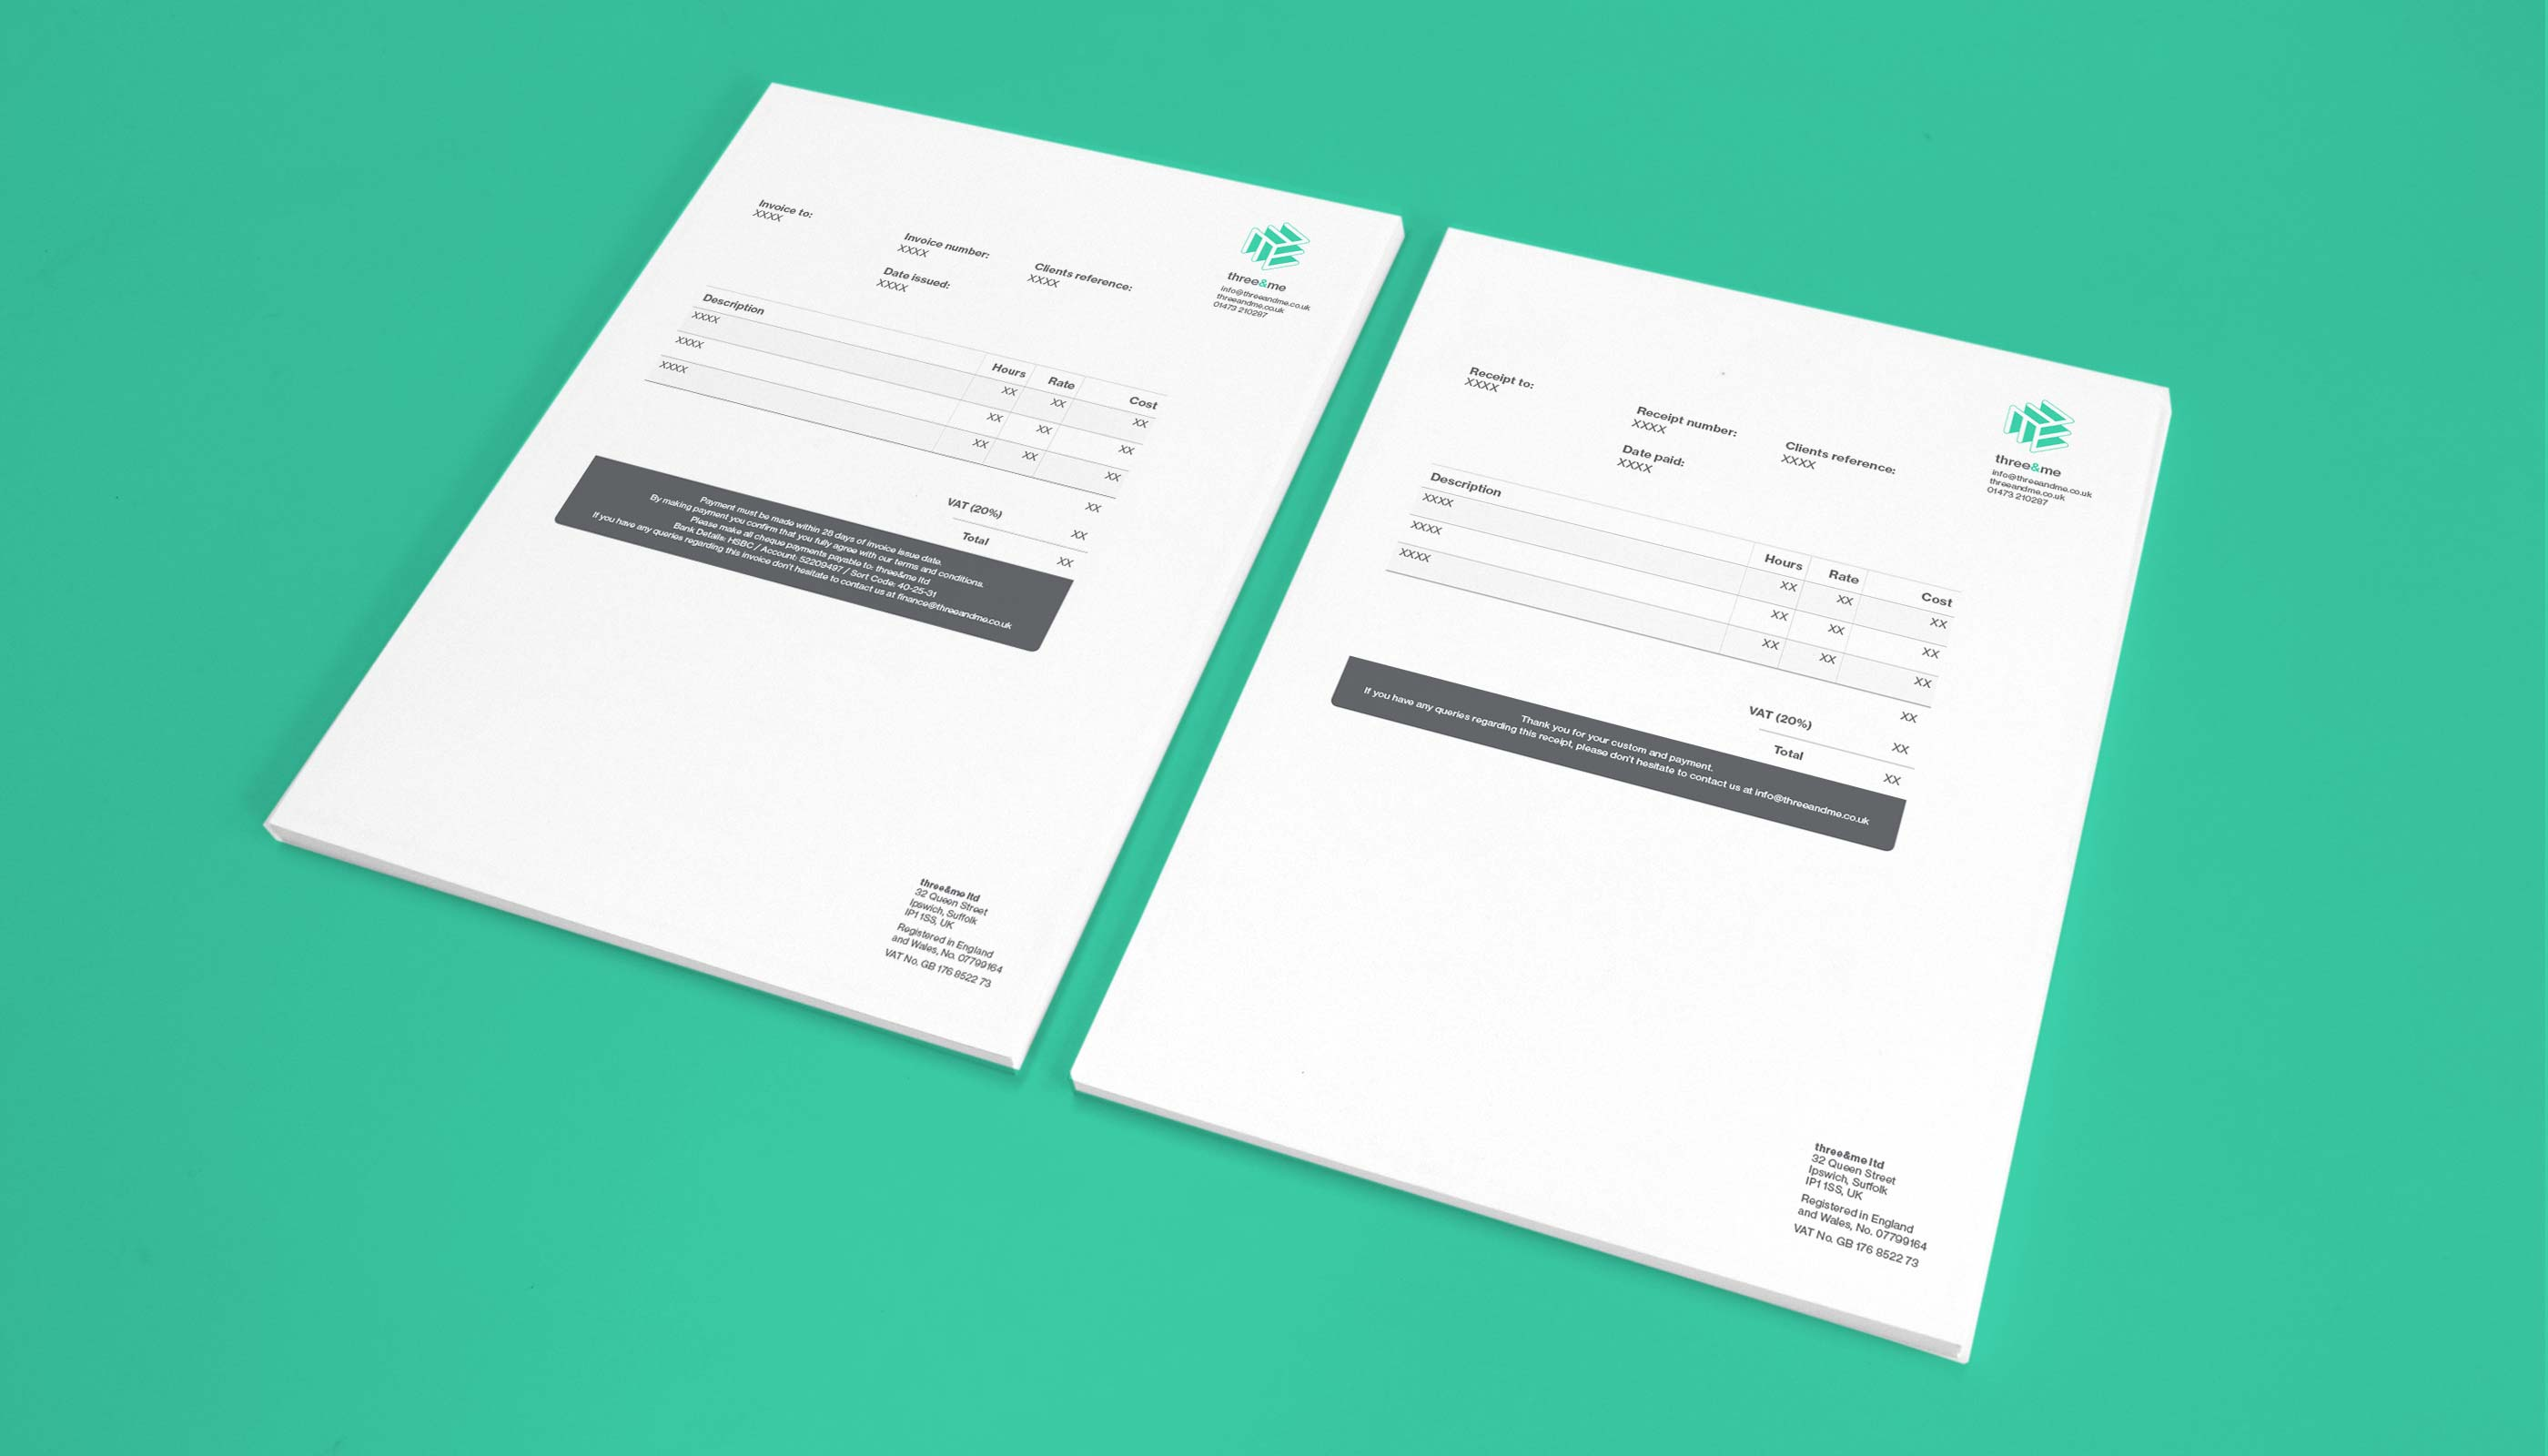 Invoice and receipt design for Three&me graphic design agency in Ipswich, Suffolk.